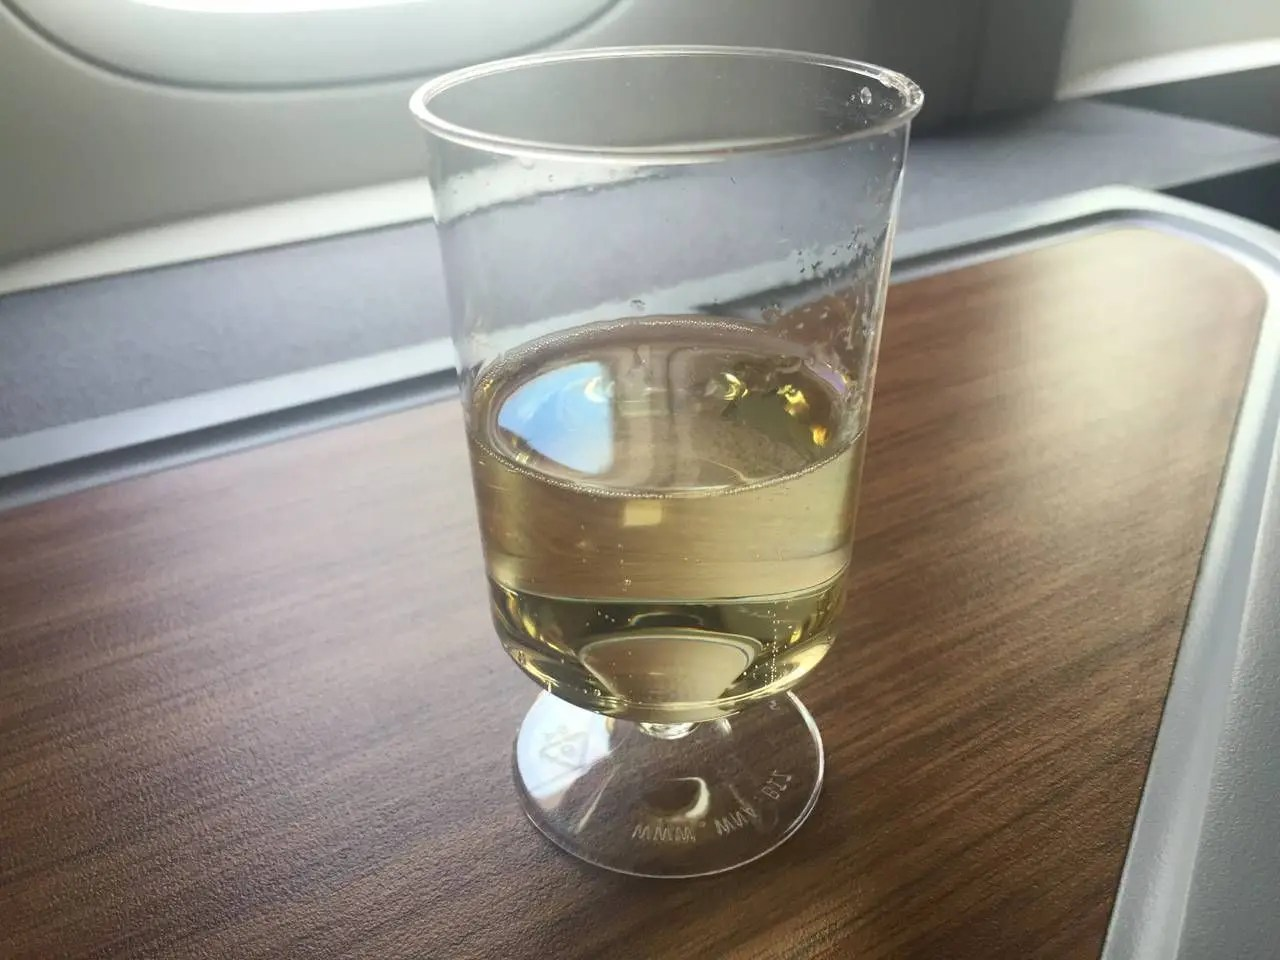 AA Hong Kong Dallas Business Class- - 7